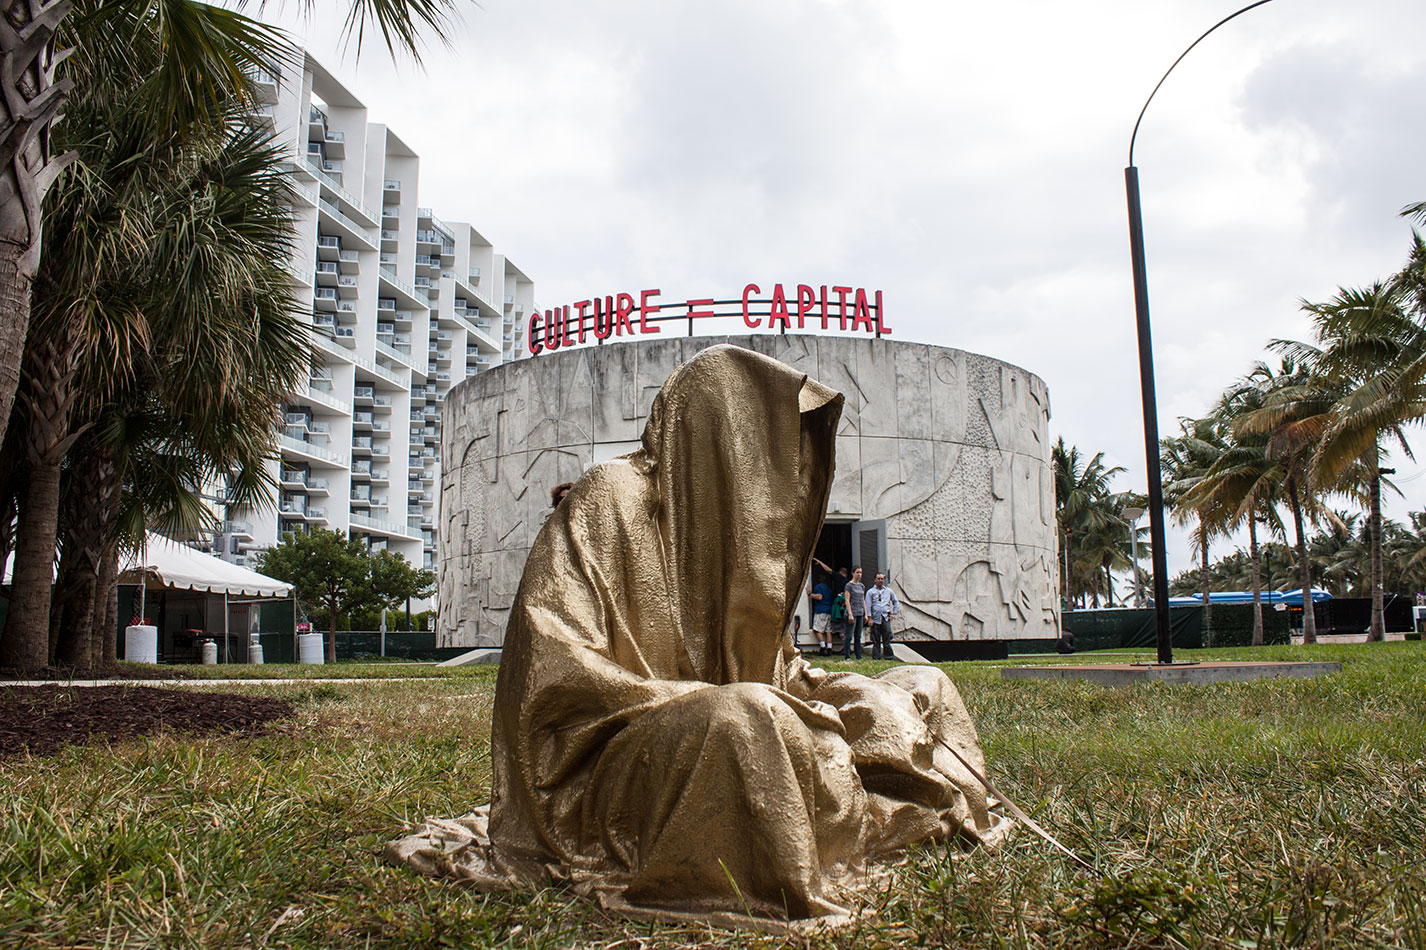 art-basel-miami-beach-fair-usa-florida-bass-museum-guardians-of-time-manfred-kili-kielnhofer-contemporary-fine-art-modern-arts-design-antiques-sculpture-6243